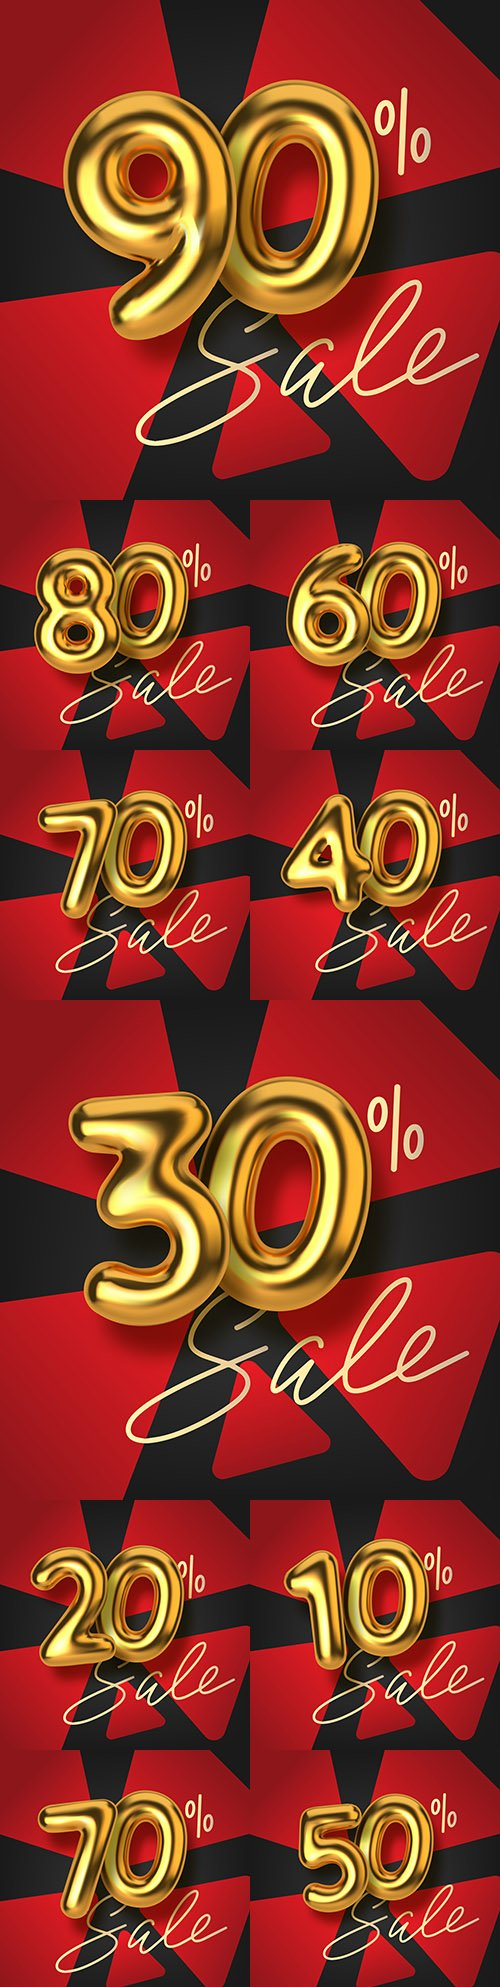 Promotion discount from realistic 3d gold text balloons